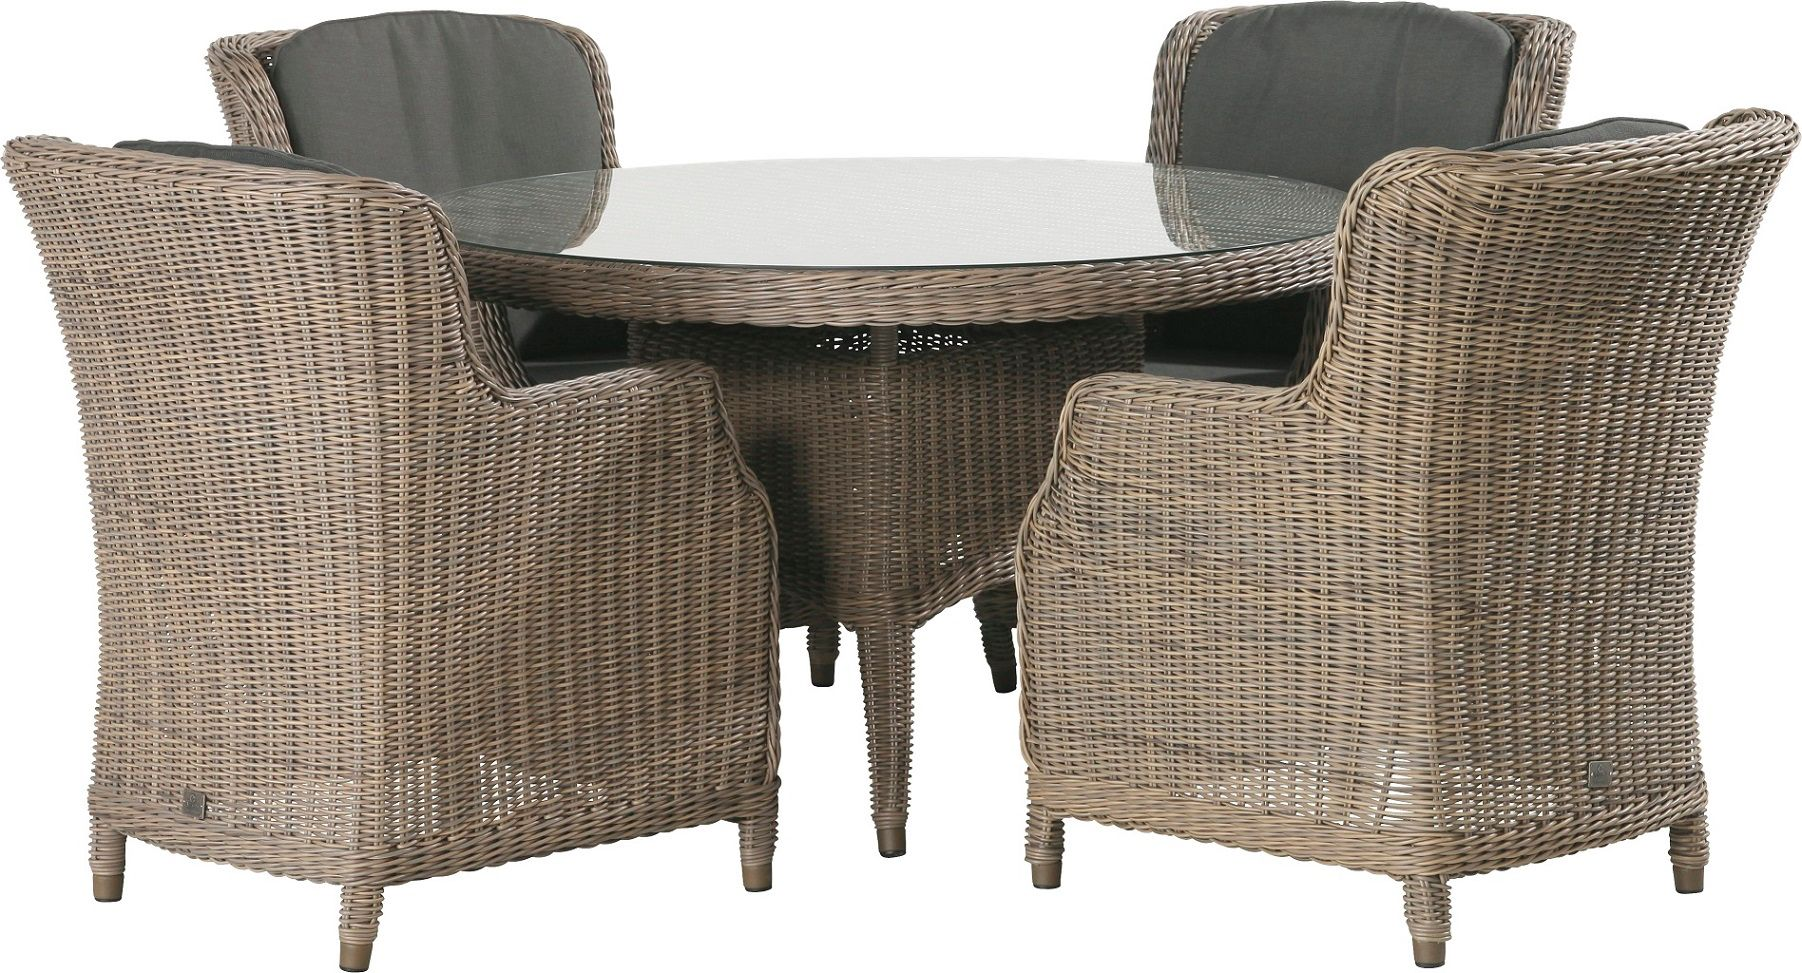 Image of 4 Seasons Outdoor Brighton 4 Seater Dining Set